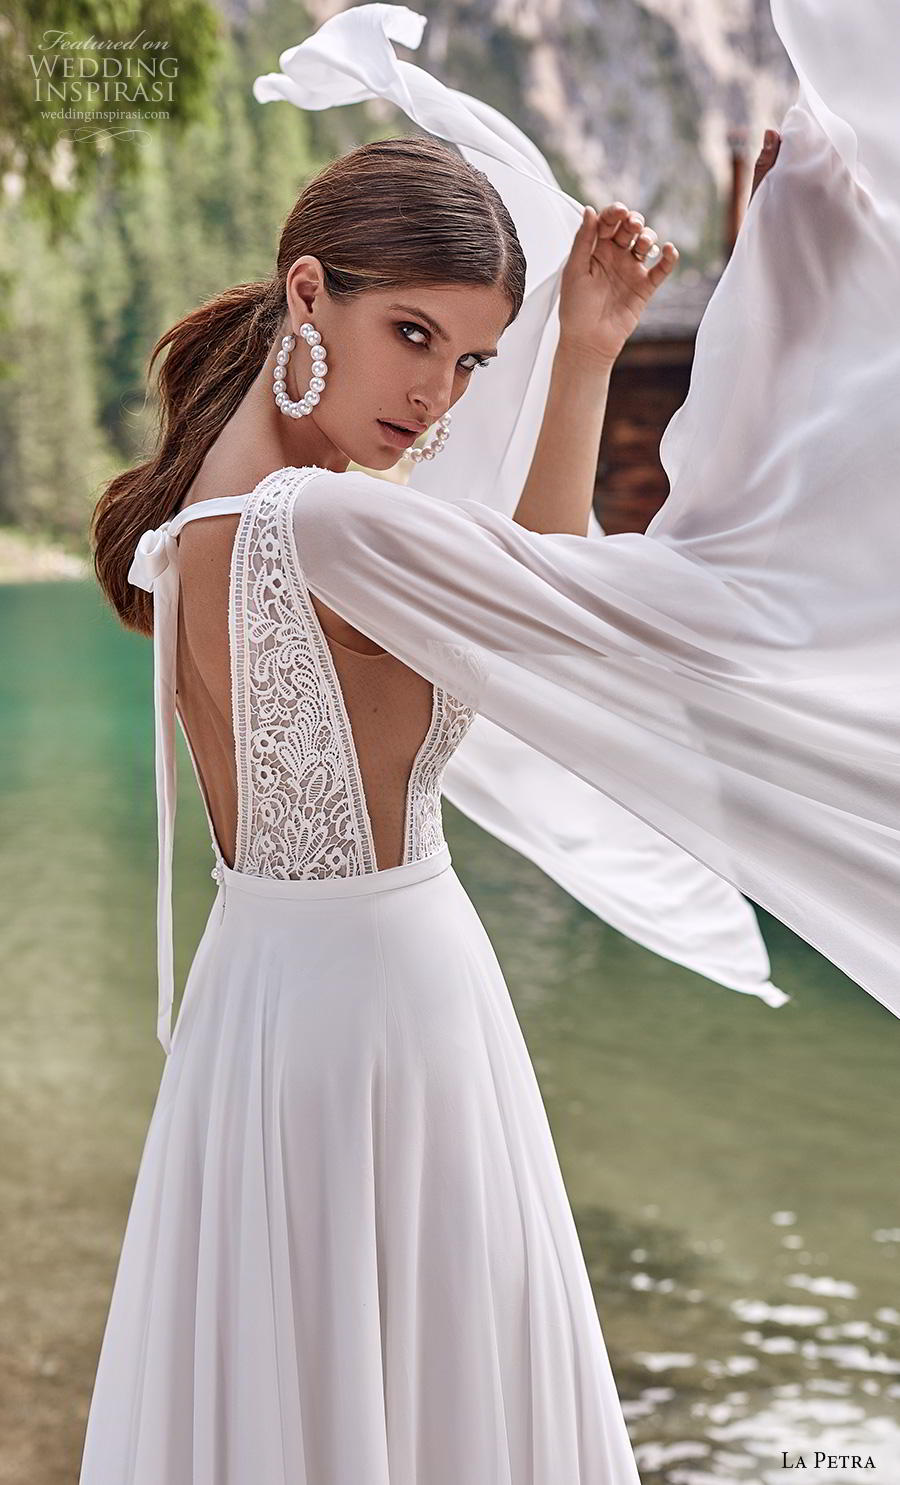 la petra 2020 bridal long hanging sleeves thick strap deep v neck heavily embellished bodice elegant grecian modified a  line wedding dress backless v back short train (1) zsdv